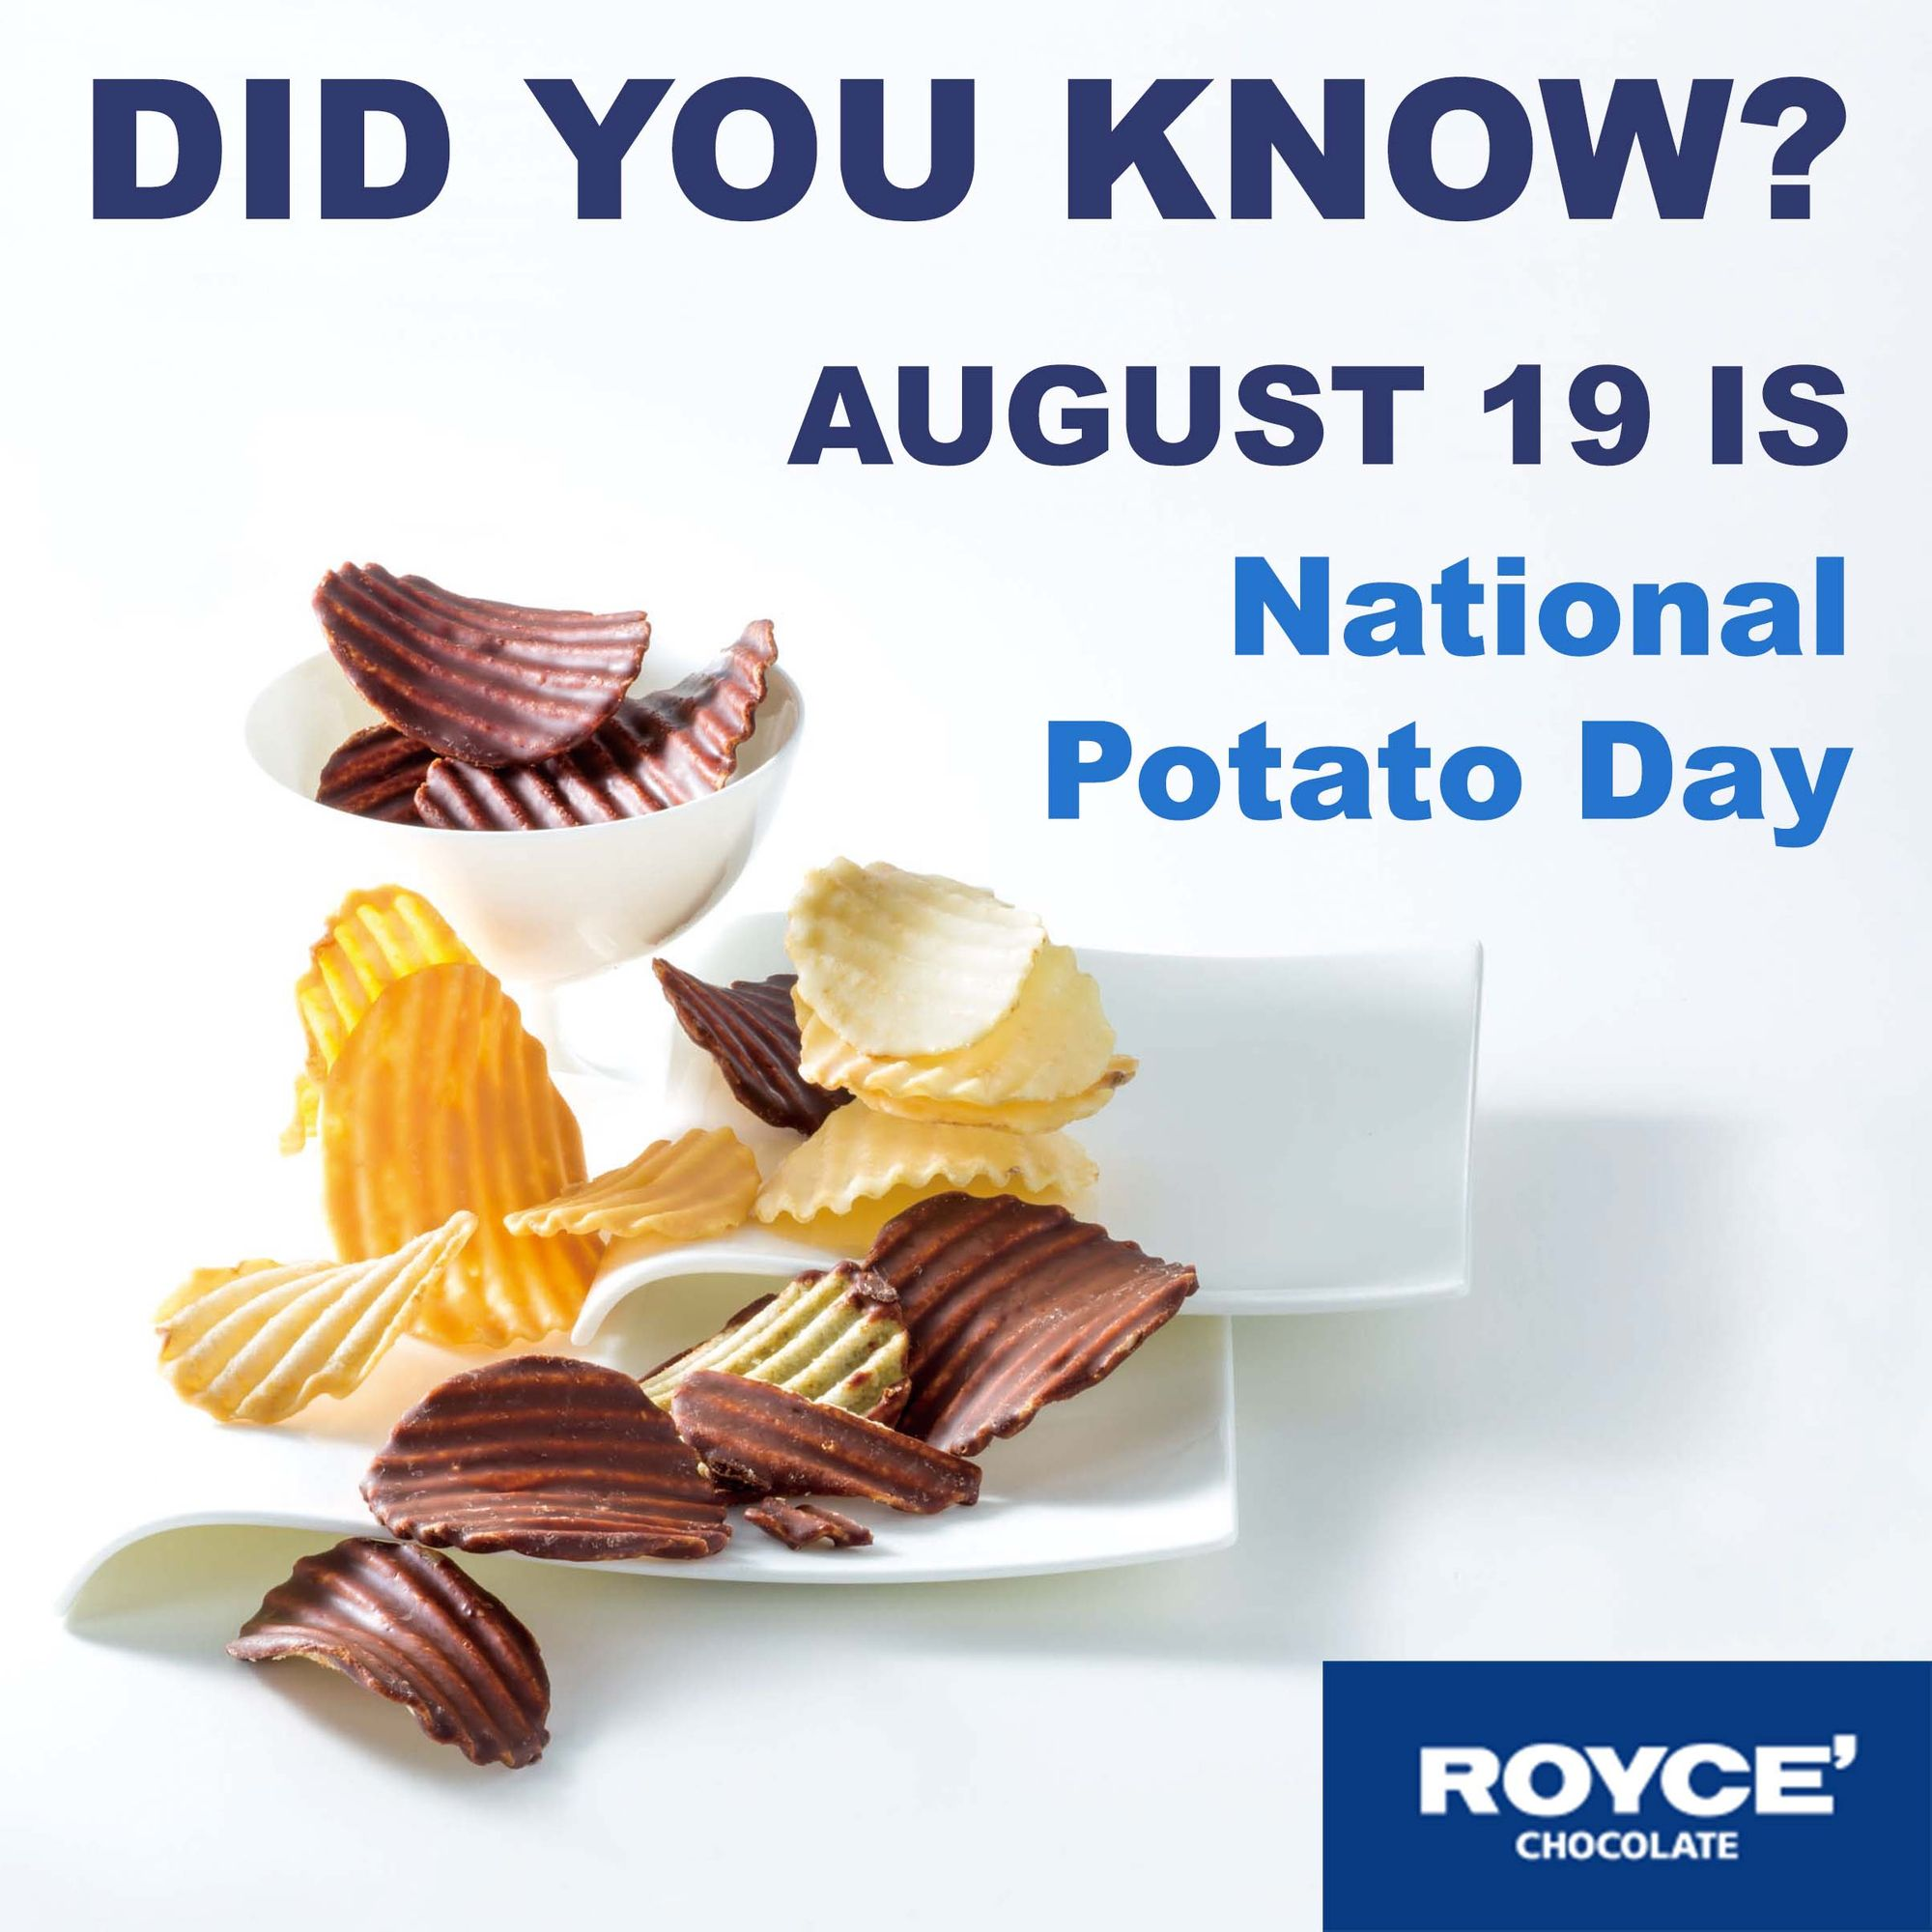 August 19 Is National Potato Day No Need To Be A Couch Potato Though Just To Indulge Sweet And Salty Chocolate Covered Potato Chips Chocolate Covered Almonds